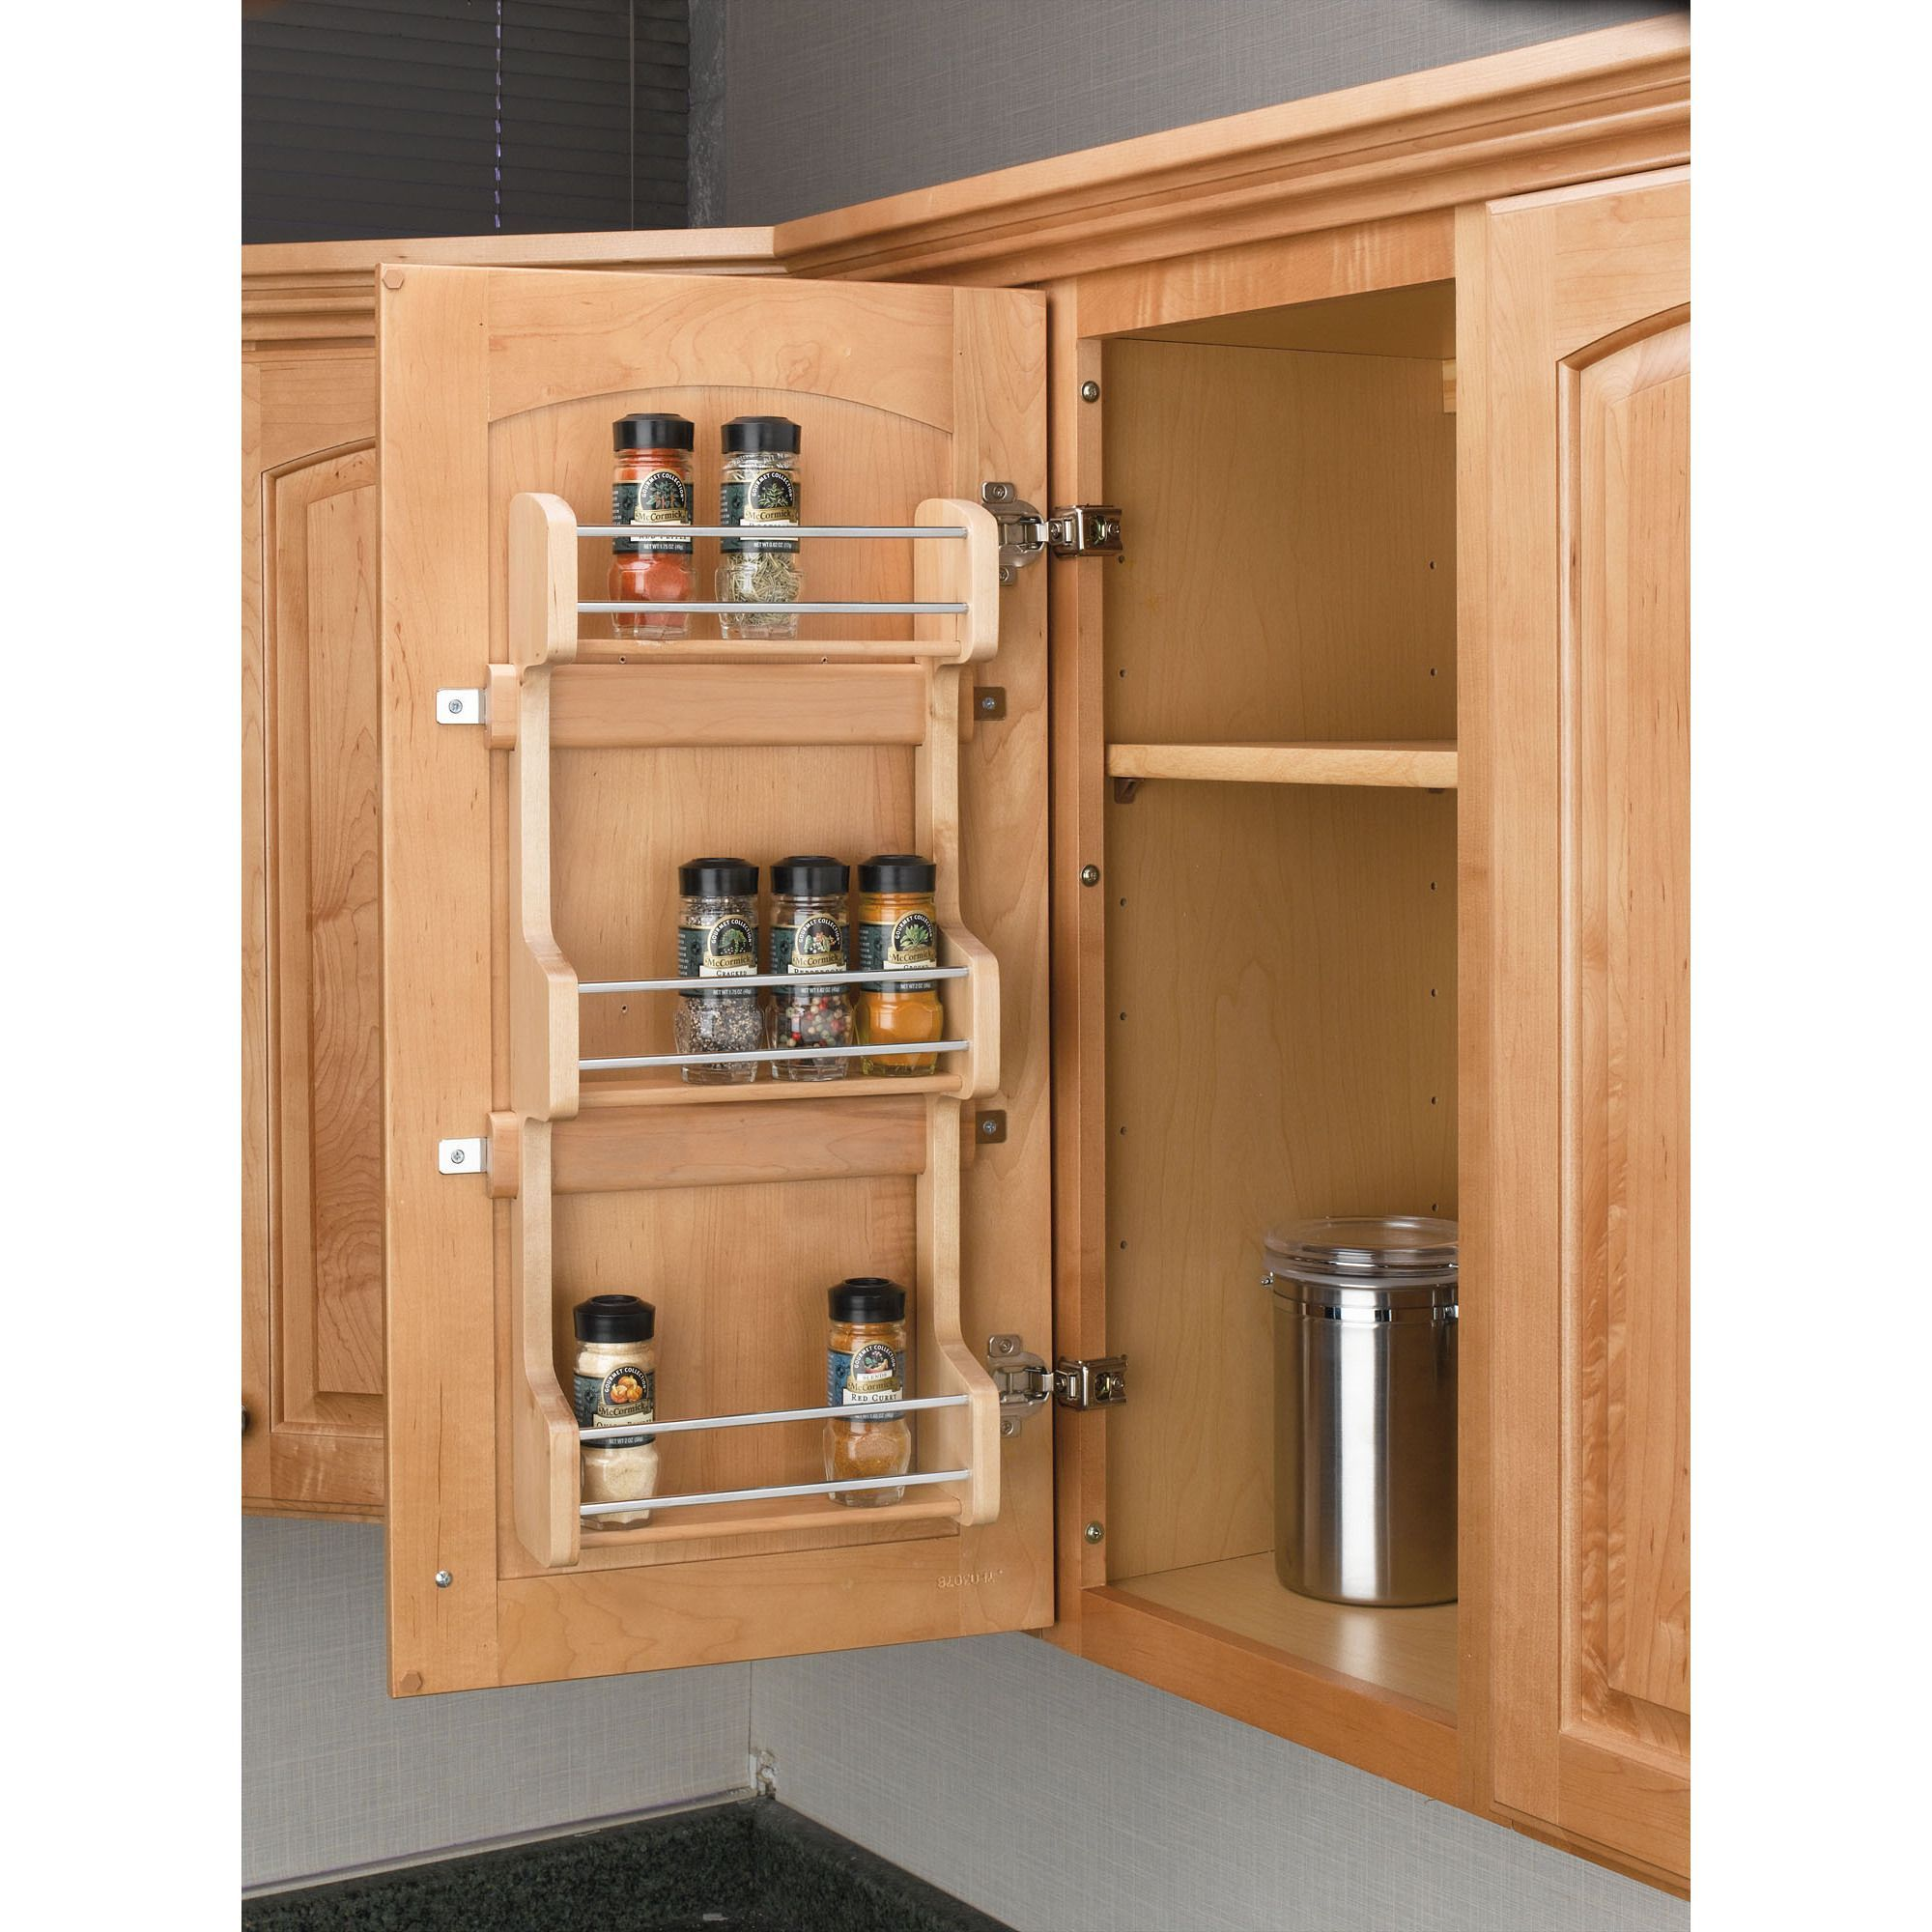 out remodel rack inc spice using lowes cabinet kitchen pull cabinets designs